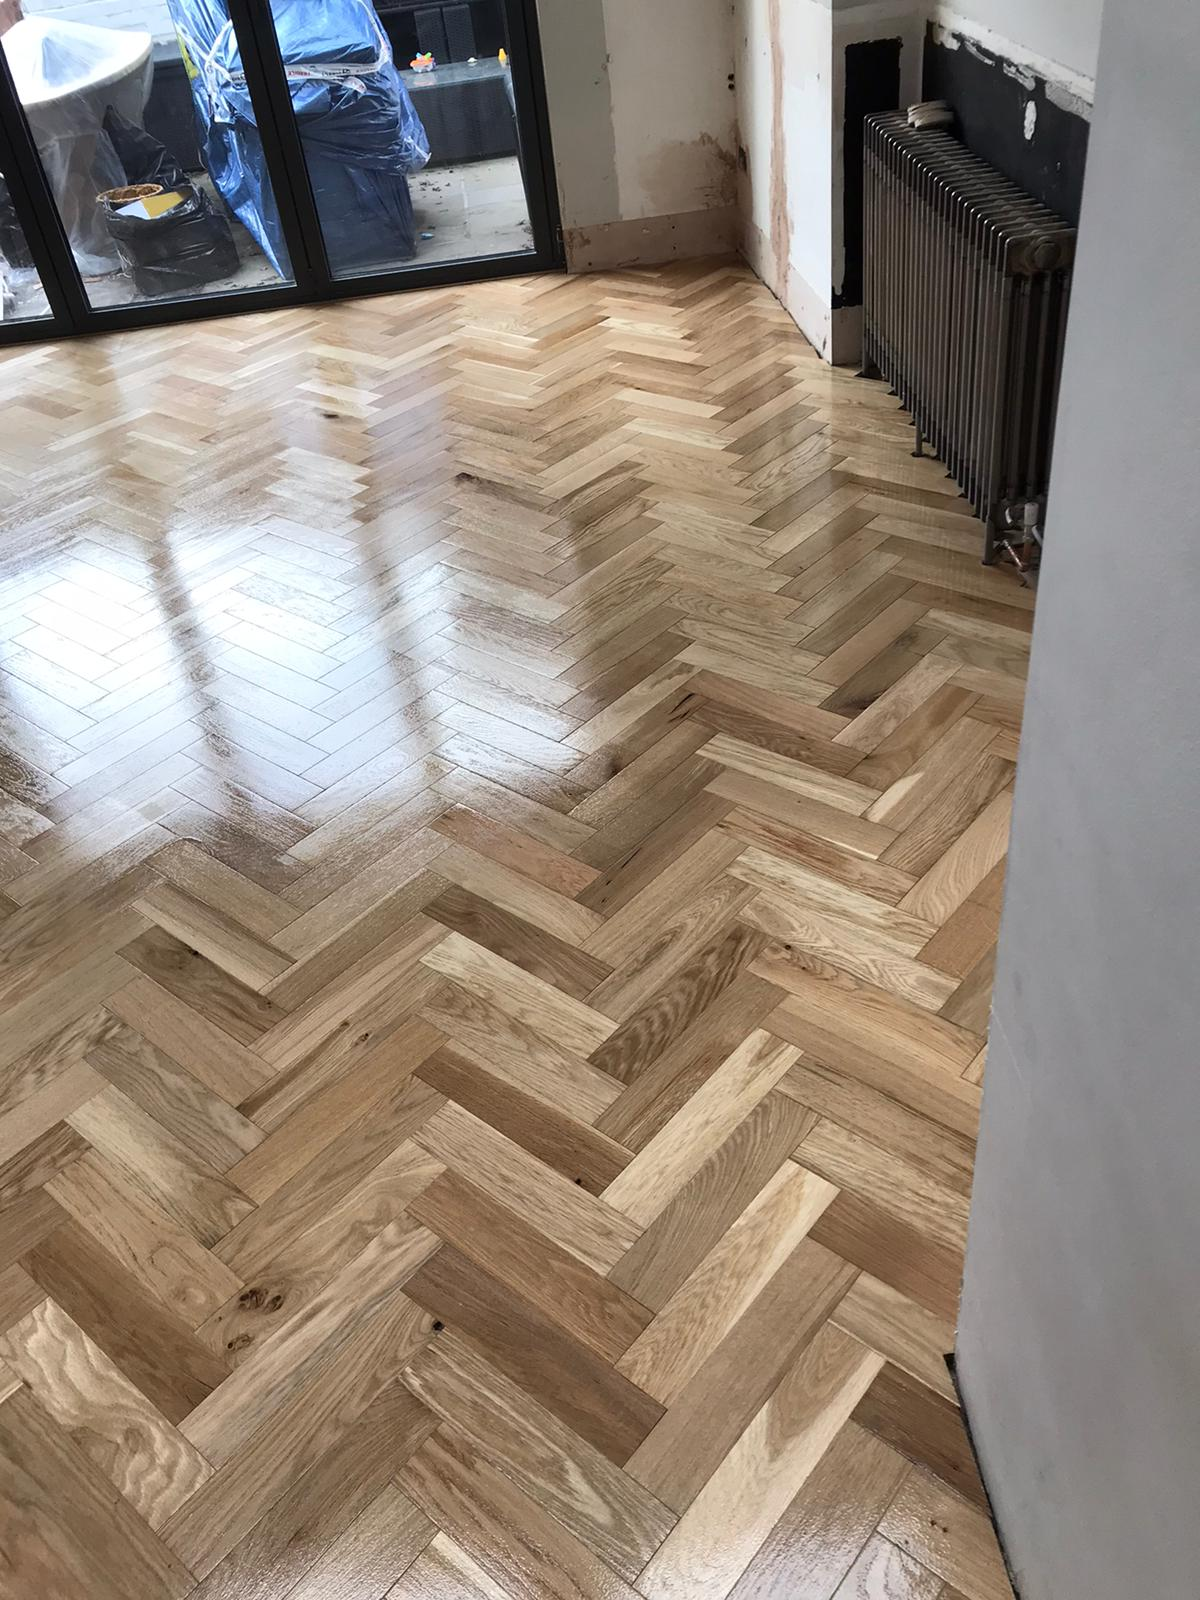 Parquet installation in herringbone pattern